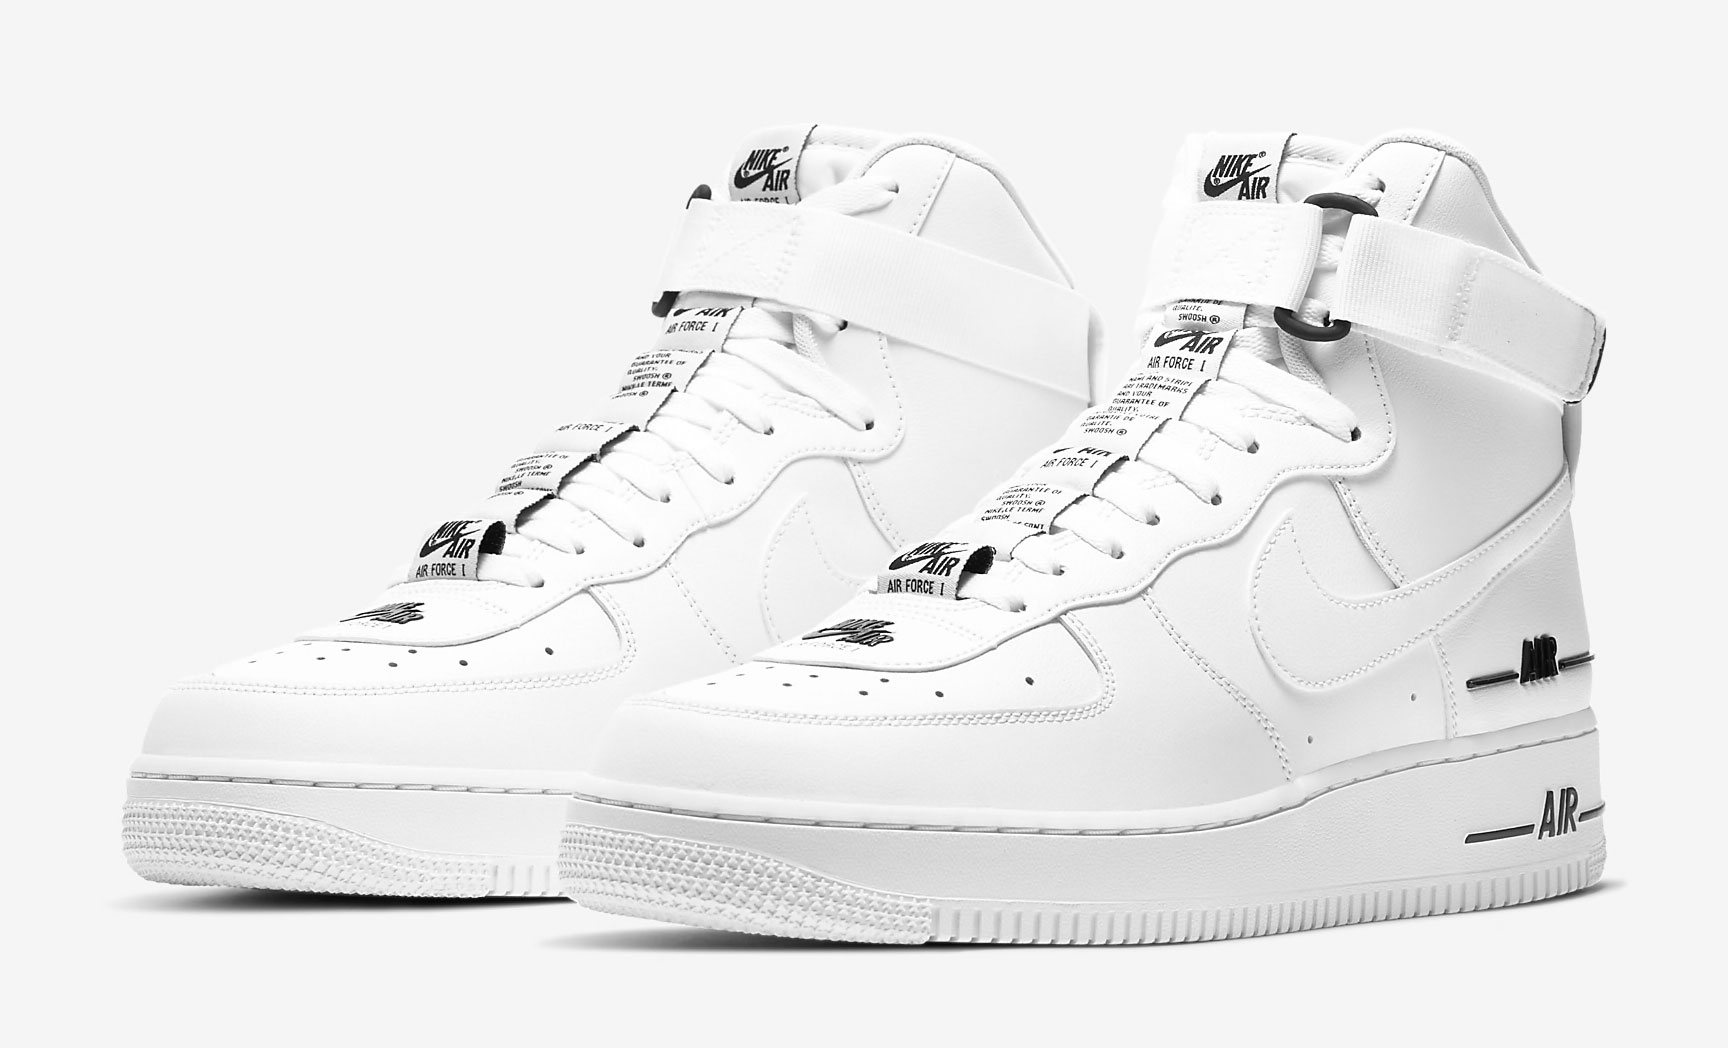 nike-air-force-1-high-lv8-3-white-black-release-date